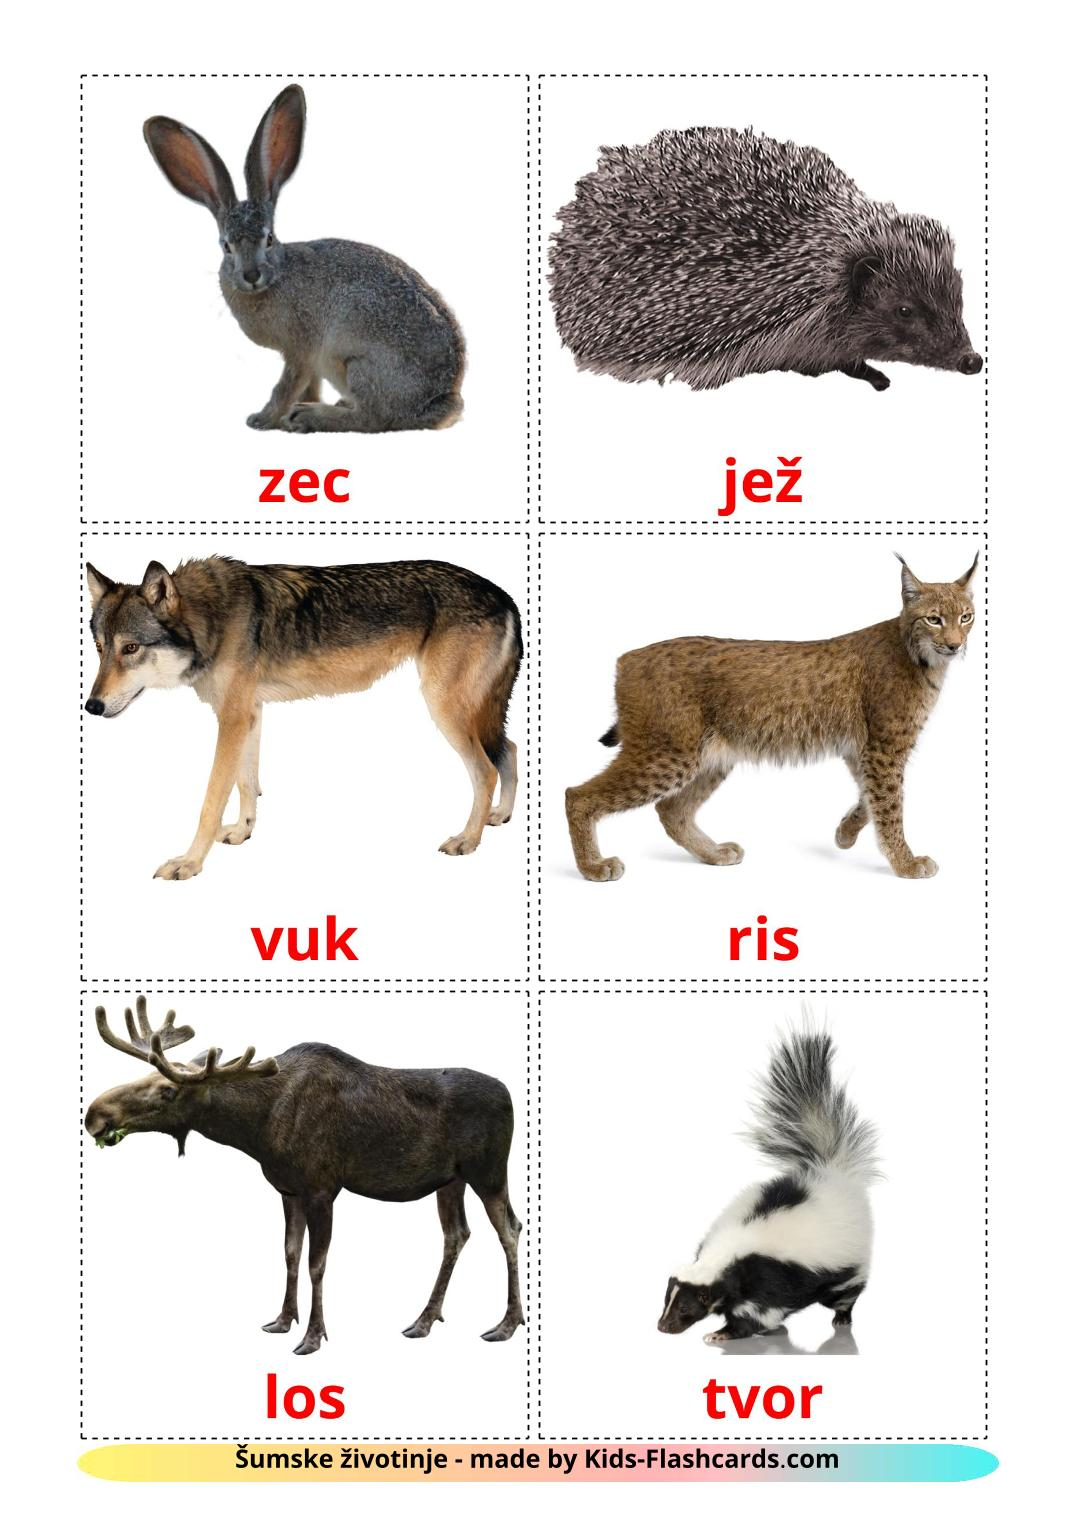 Forest animals - 22 Free Printable croatian Flashcards